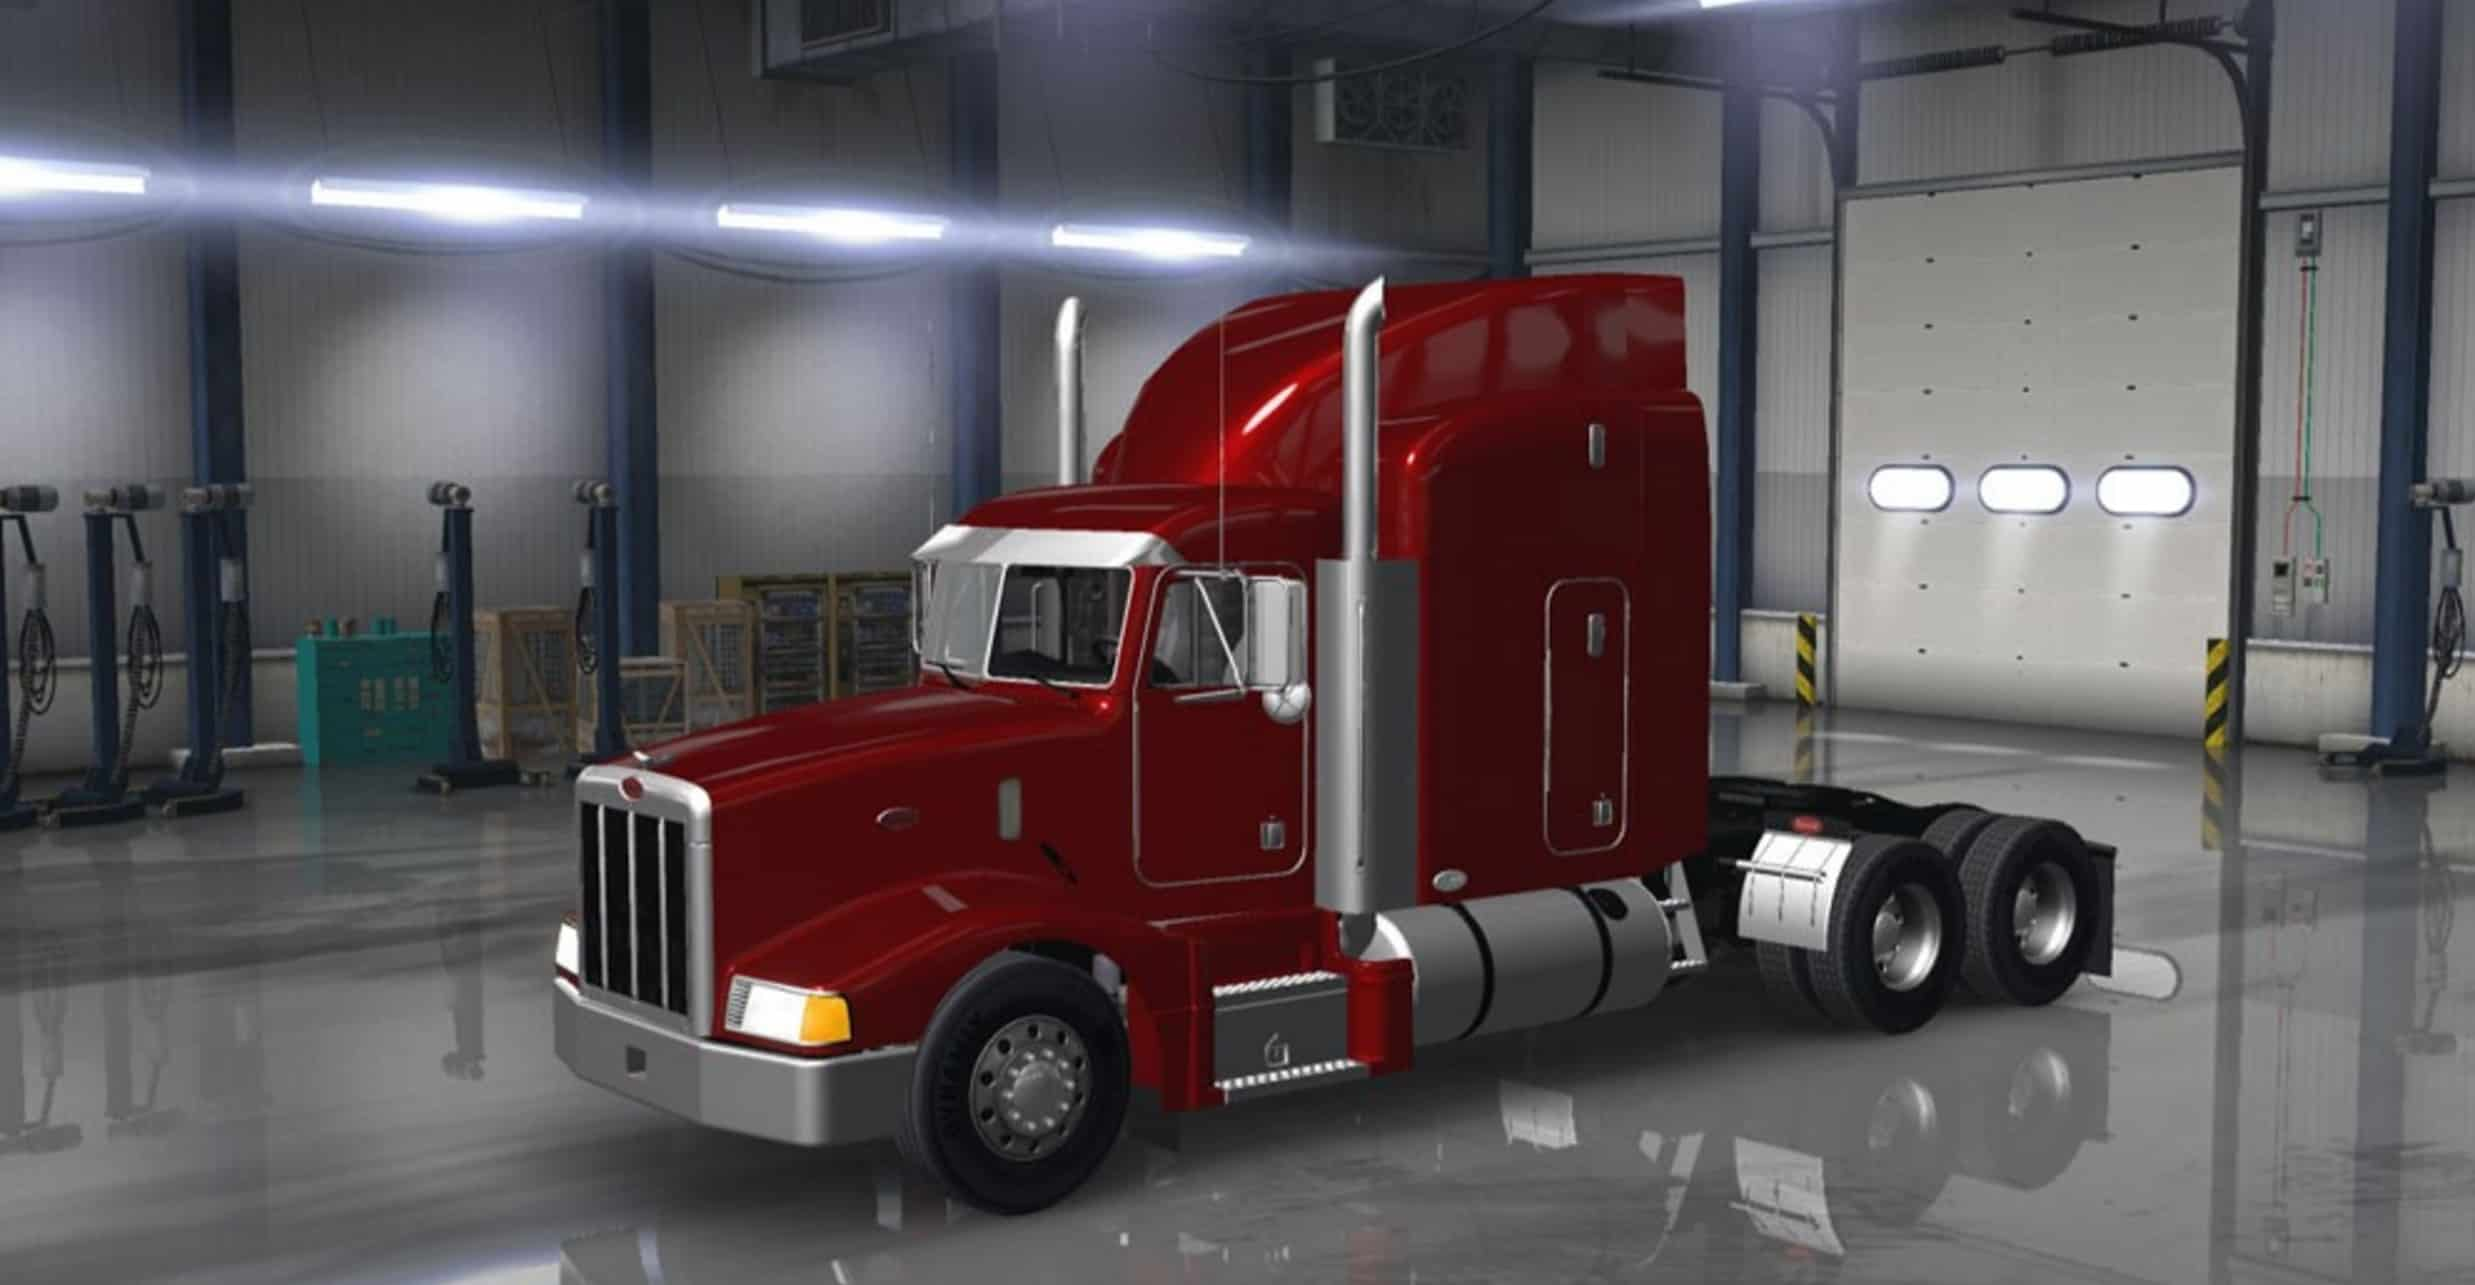 Peterbilt 377 Truck additionally Mod Addon Scania Next Generation V1 0 besides Cars furthermore 579 furthermore Neway Adz. on peterbilt truck parts